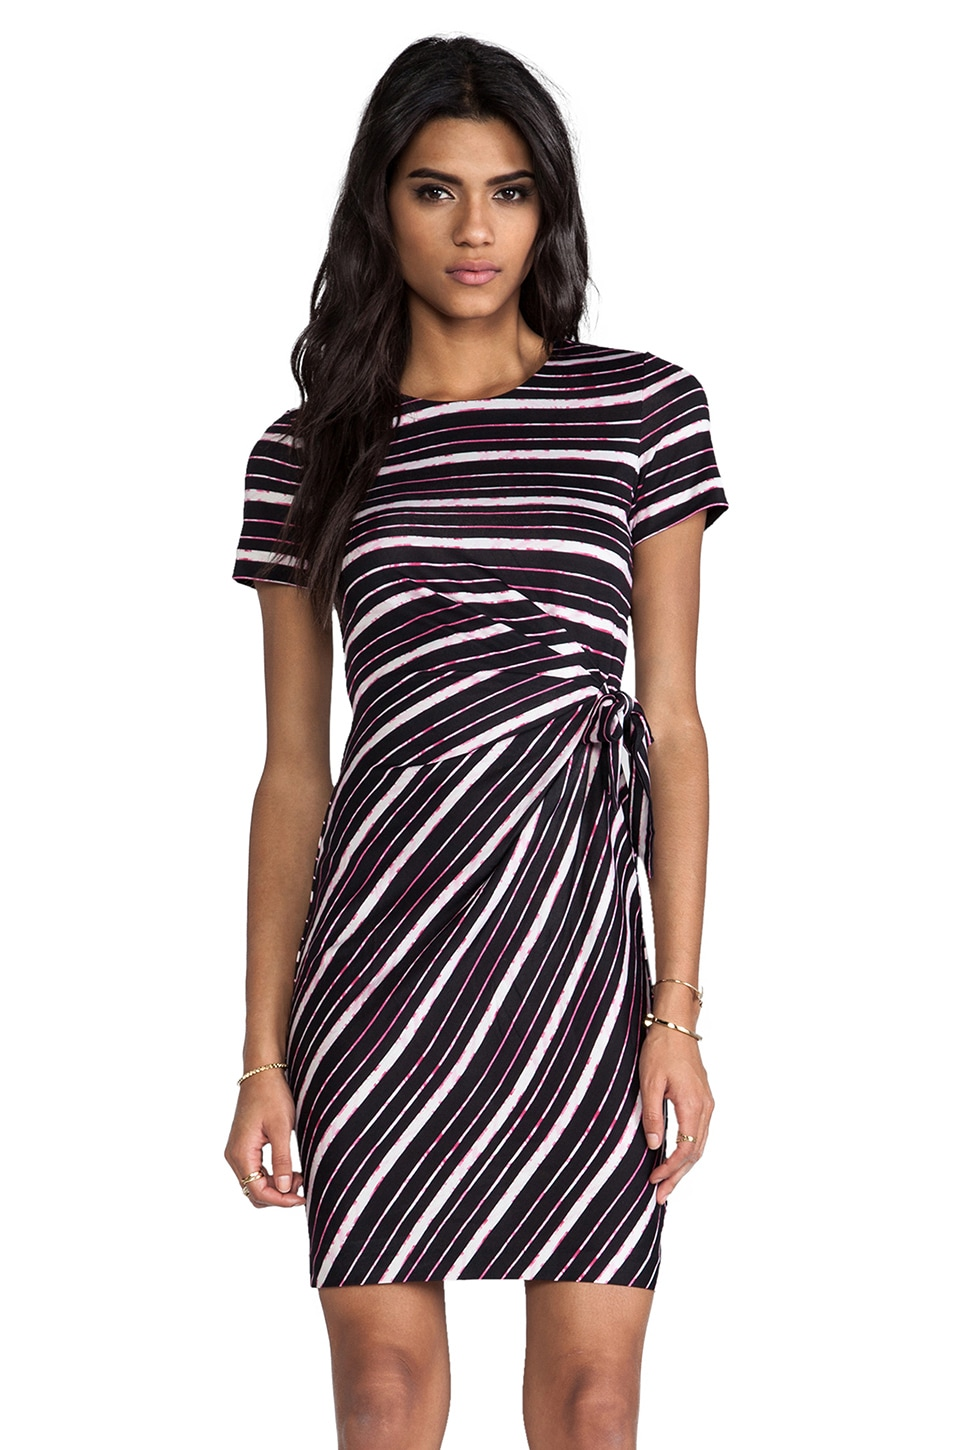 Diane von Furstenberg Brie Dress in Metallic Stripe